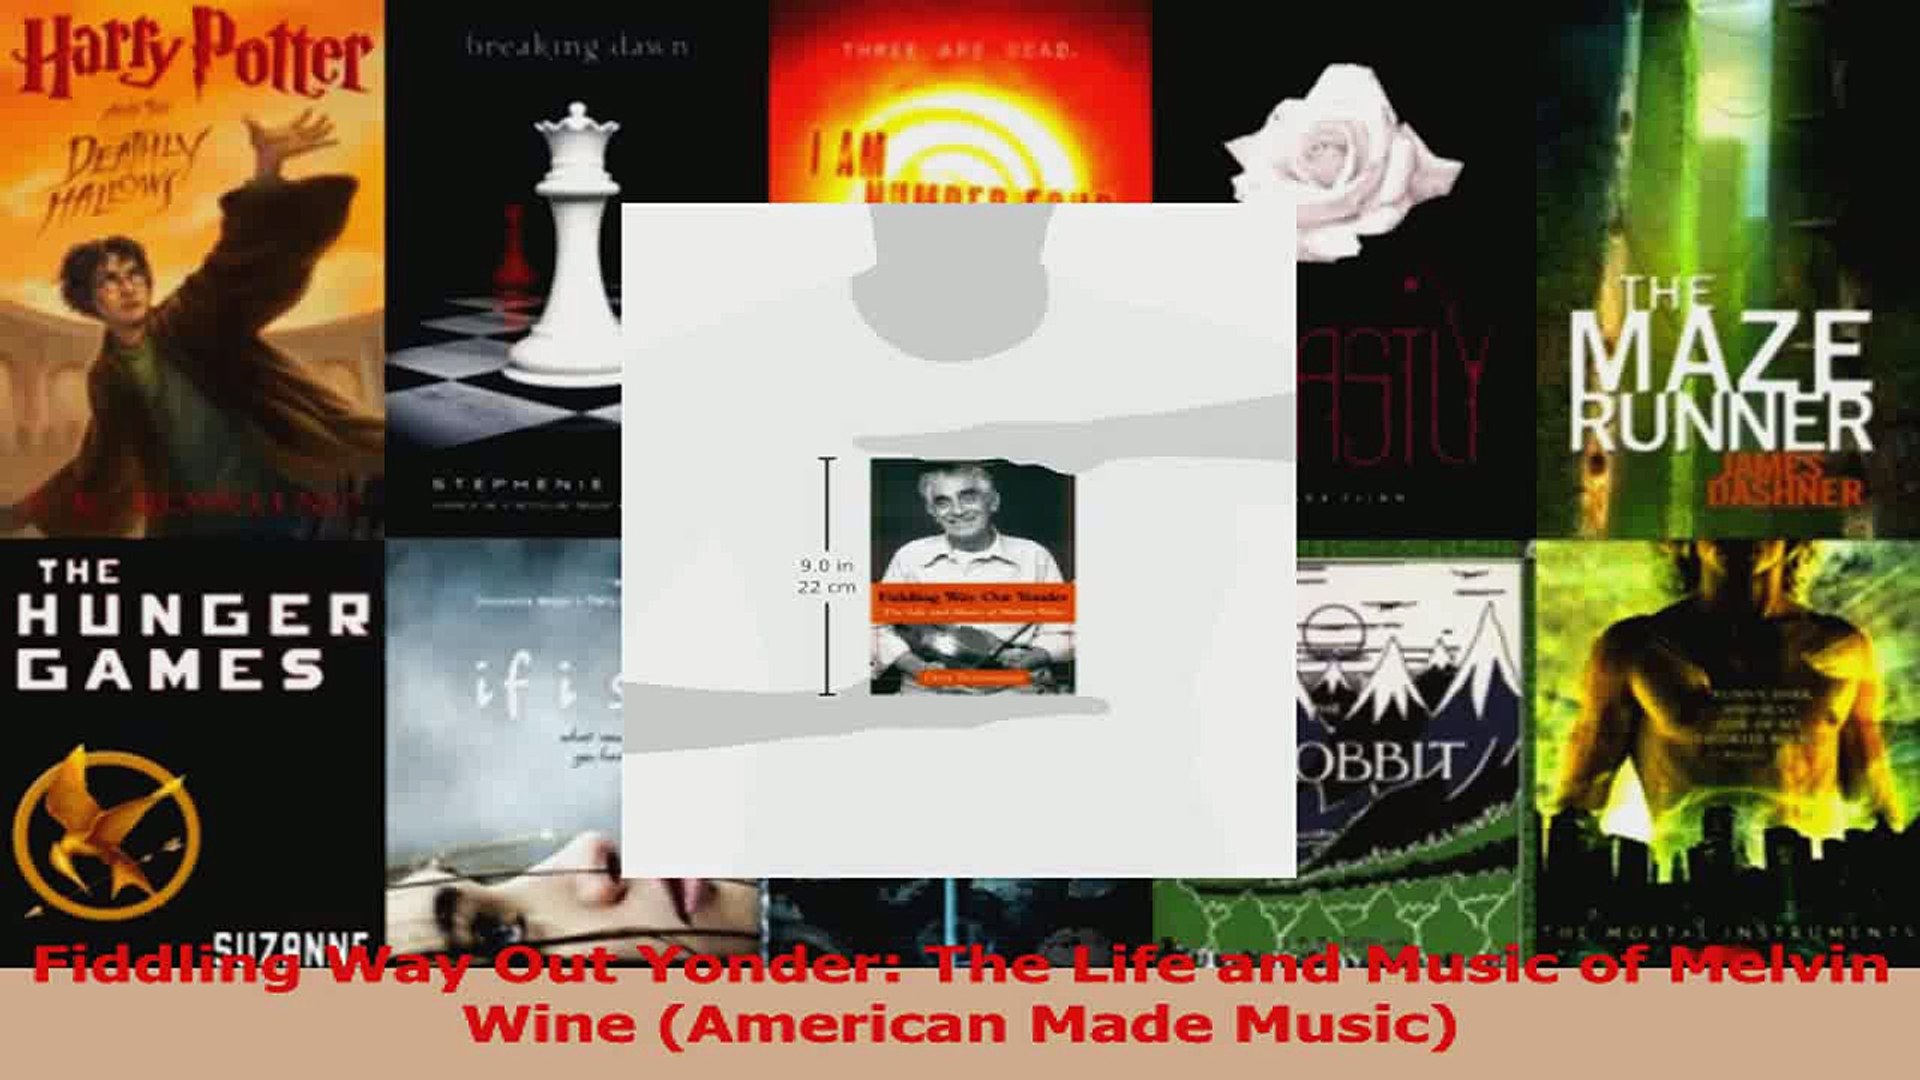 PDF Download  Fiddling Way Out Yonder The Life and Music of Melvin Wine American Made Music Download